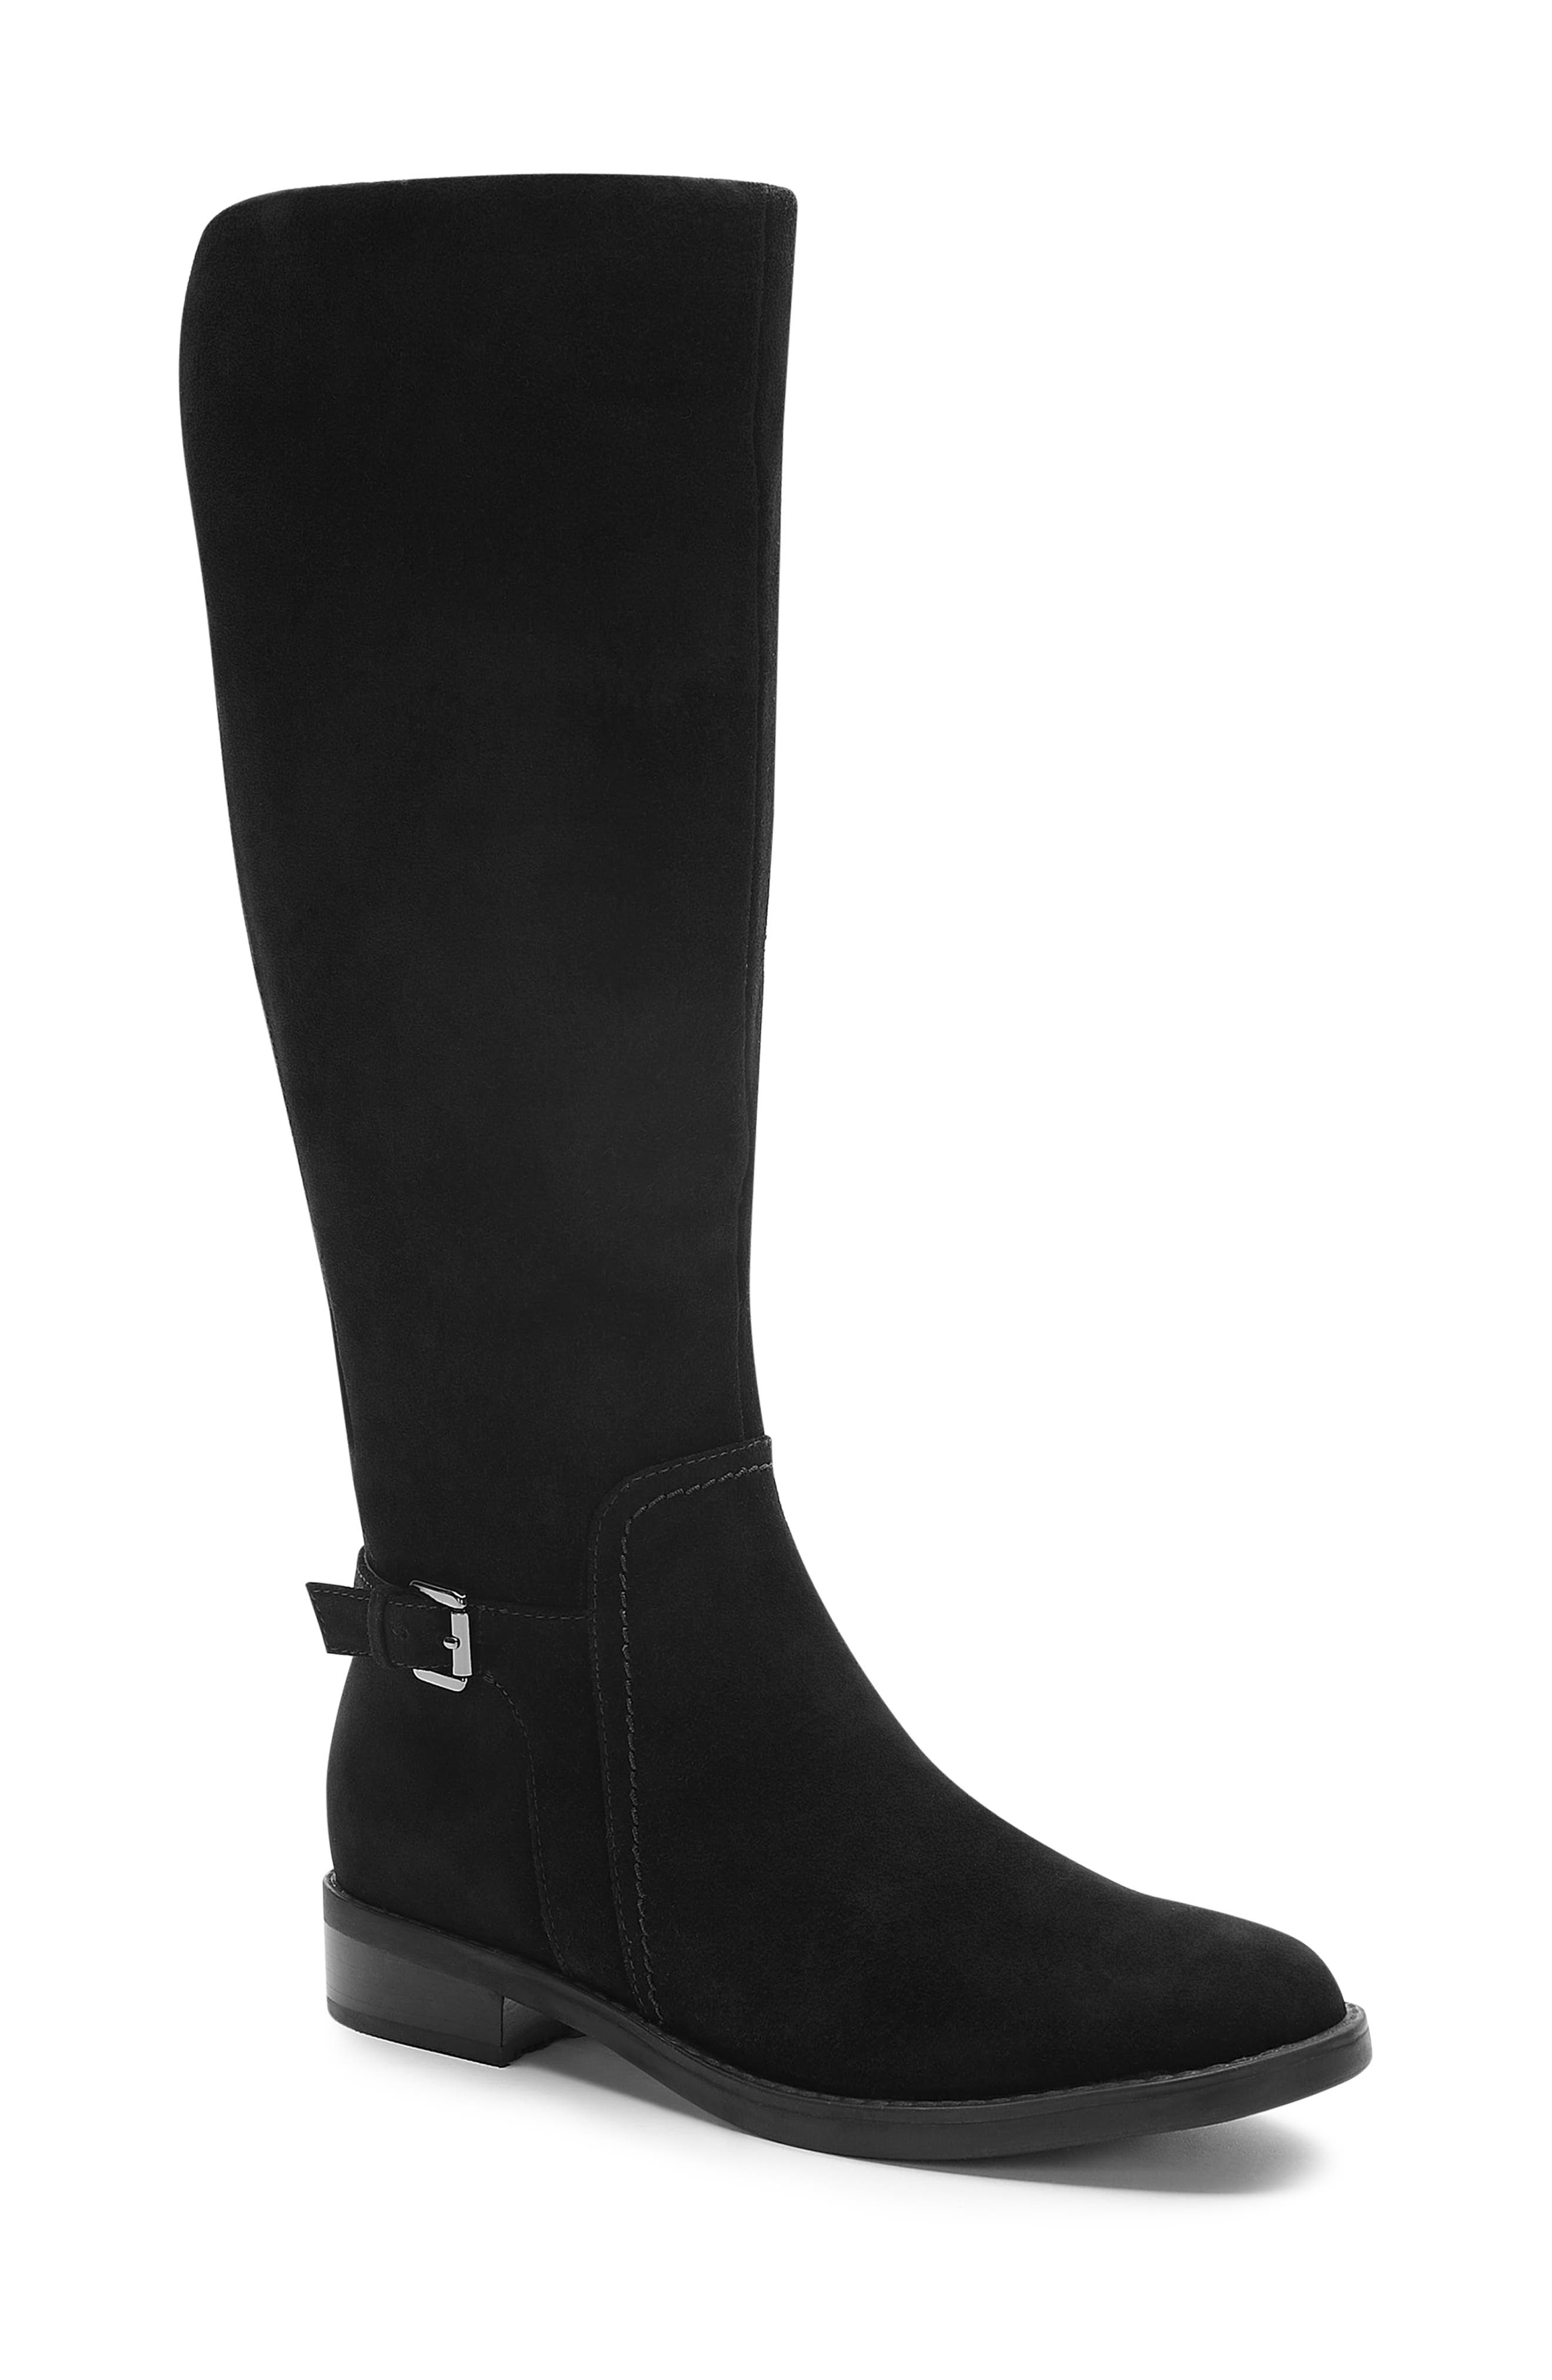 Evie Riding Waterproof Boot,                             Main thumbnail 1, color,                             BLACK SUEDE